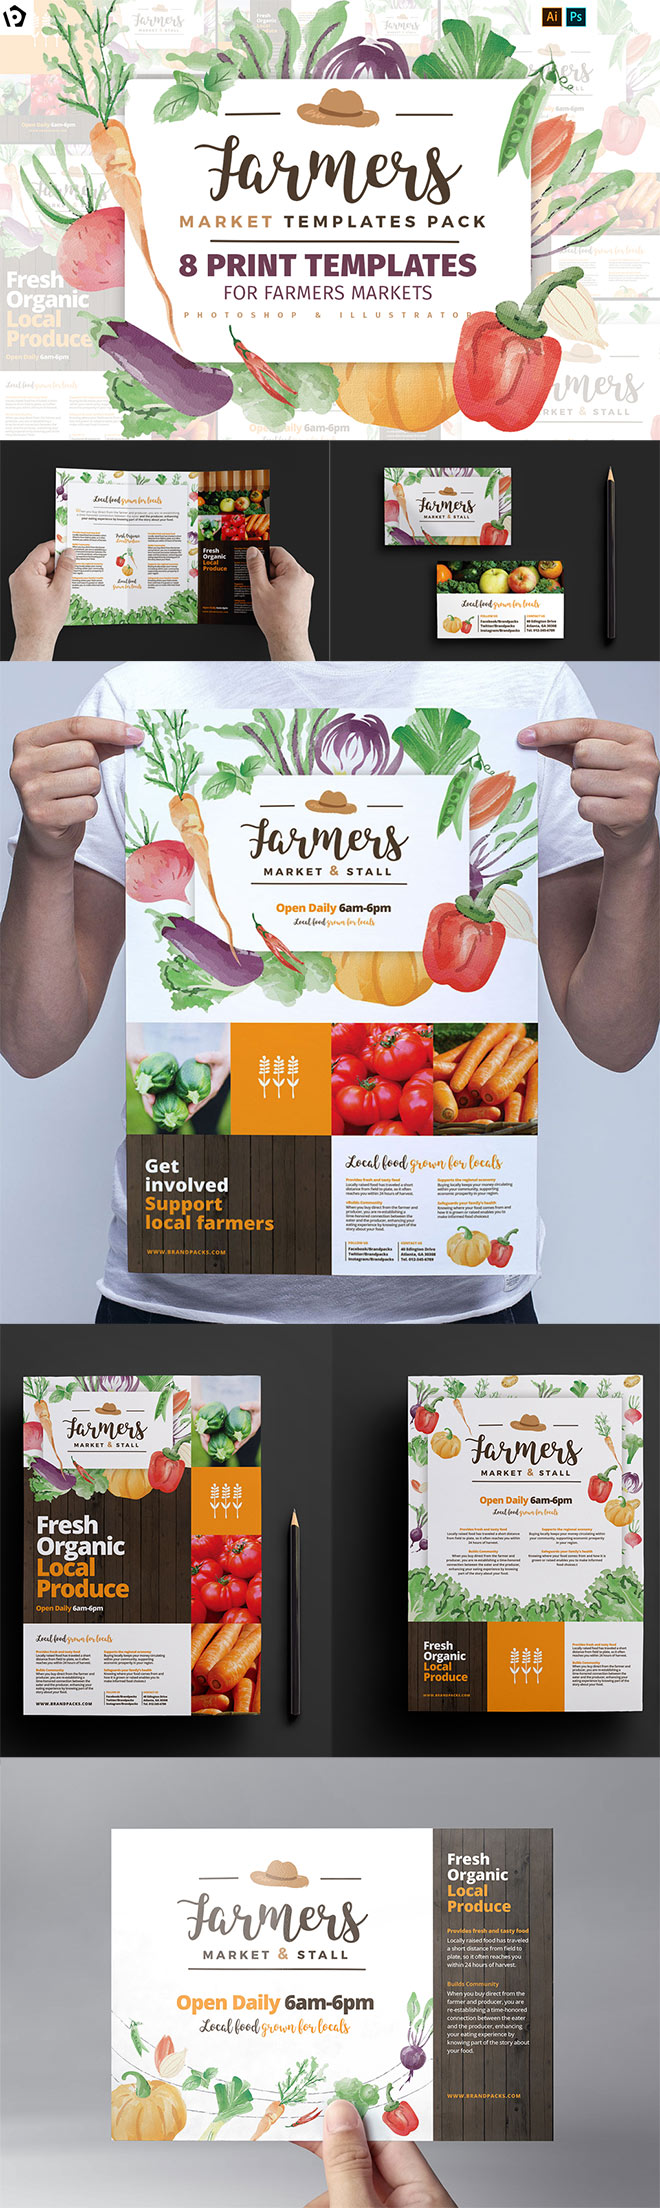 Farmers Market Templates